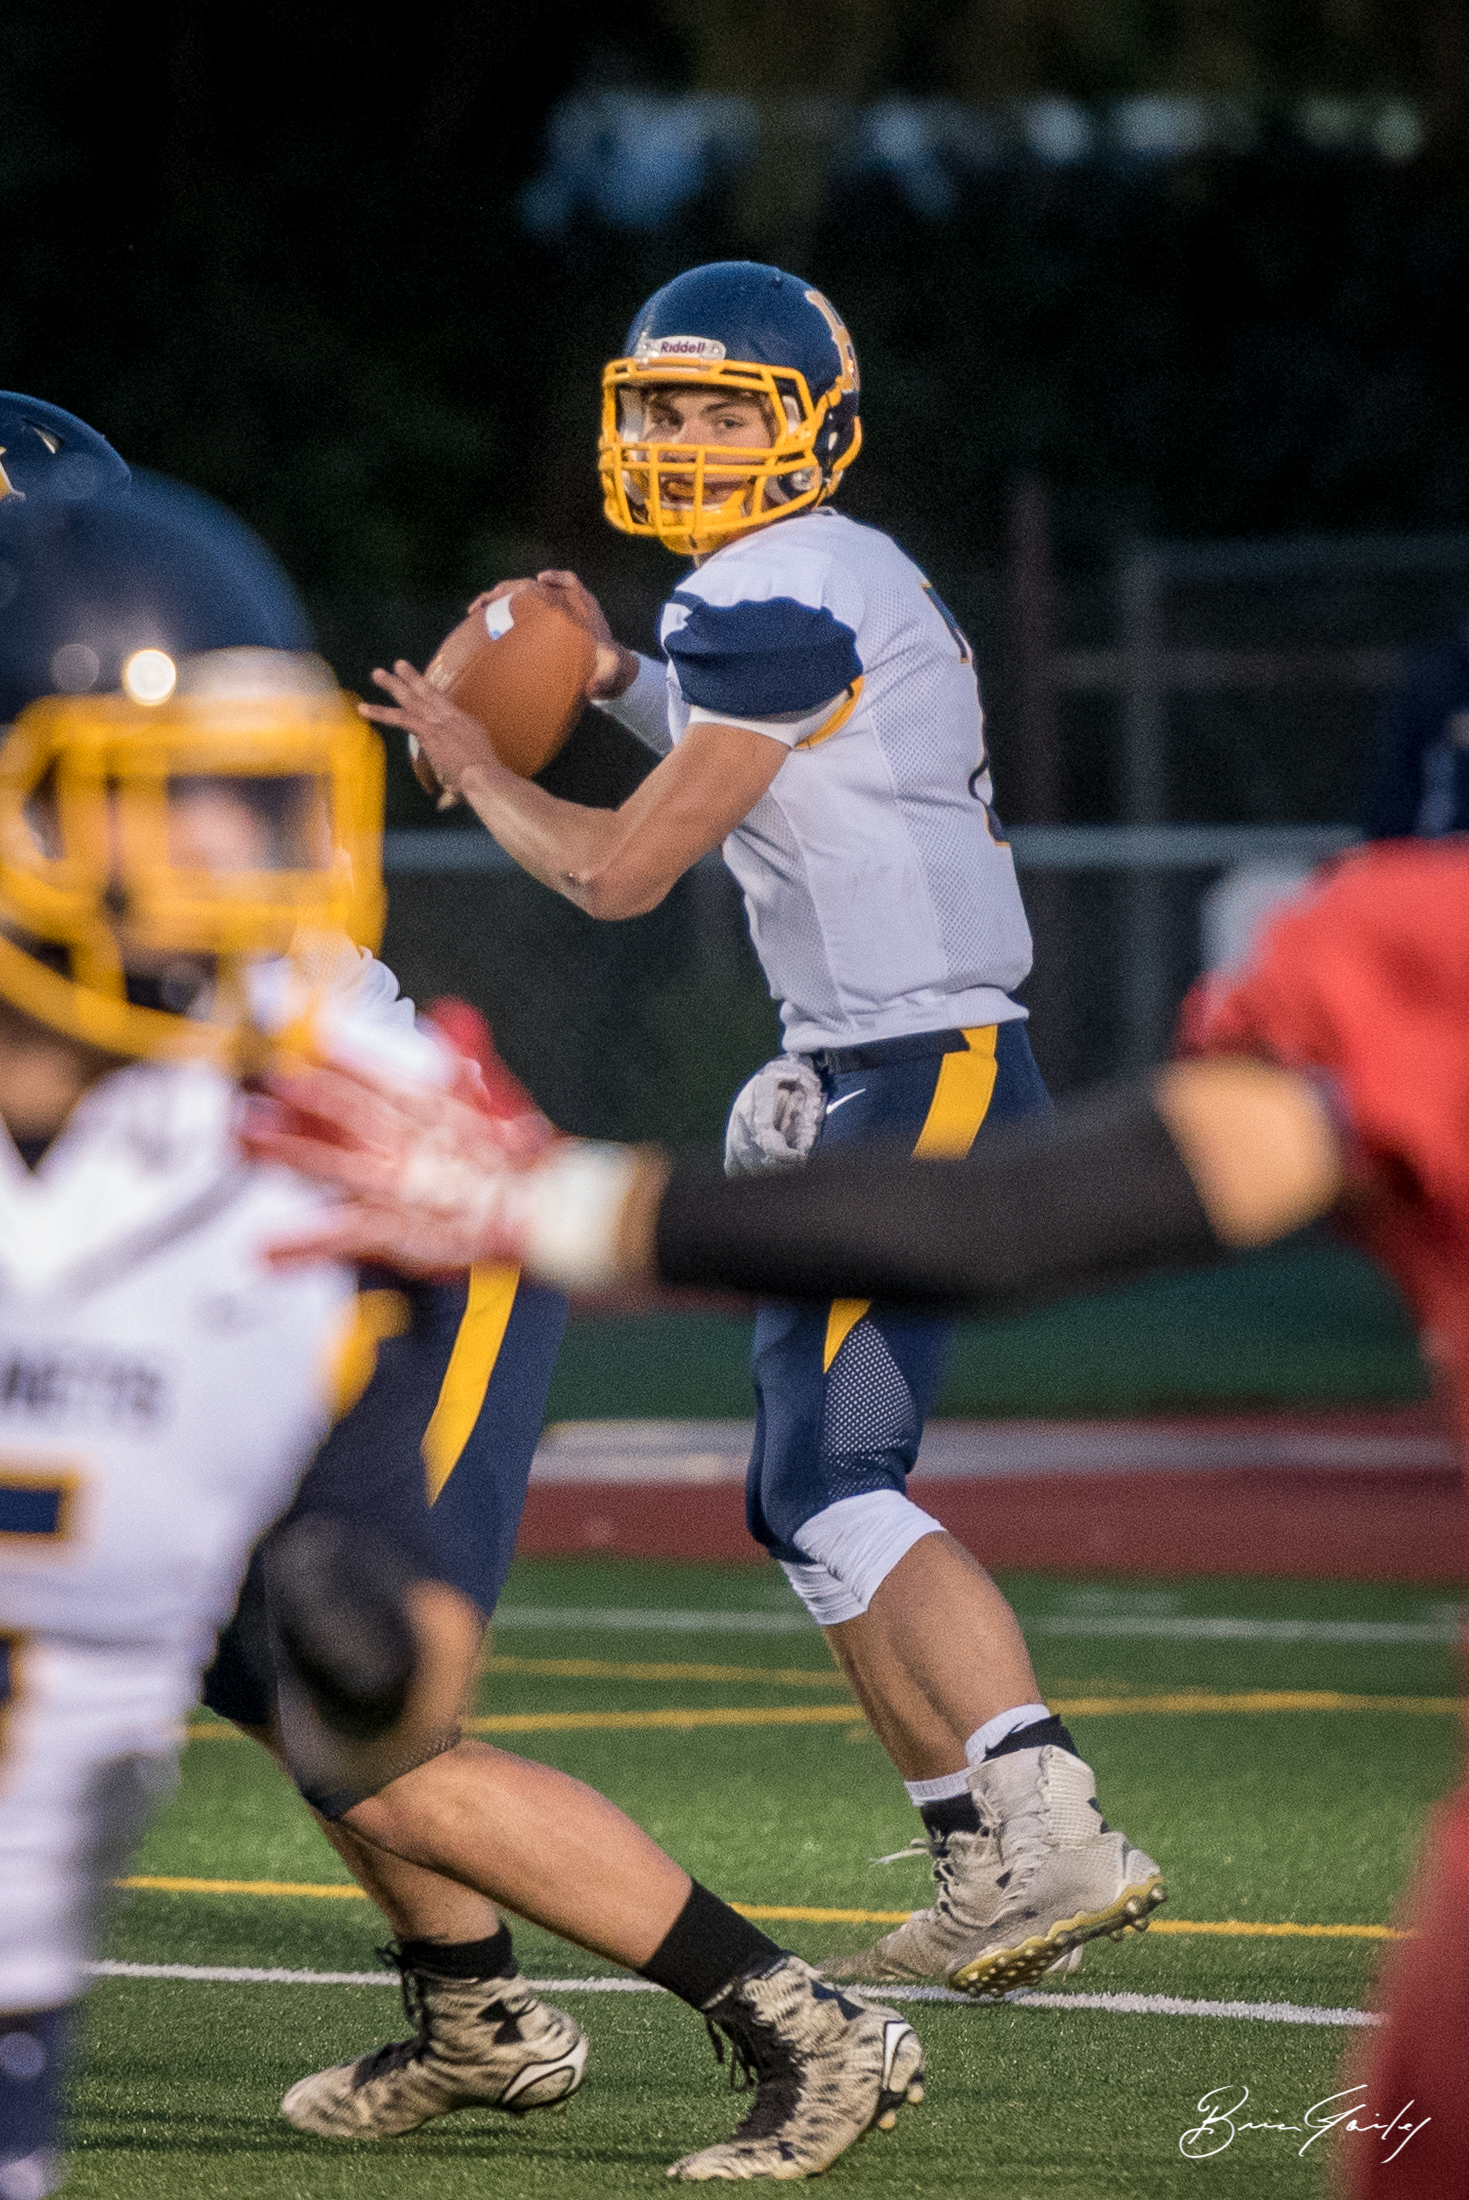 Hornet Quarterback #7, Kyle Hadwick studies the field looking for his target.